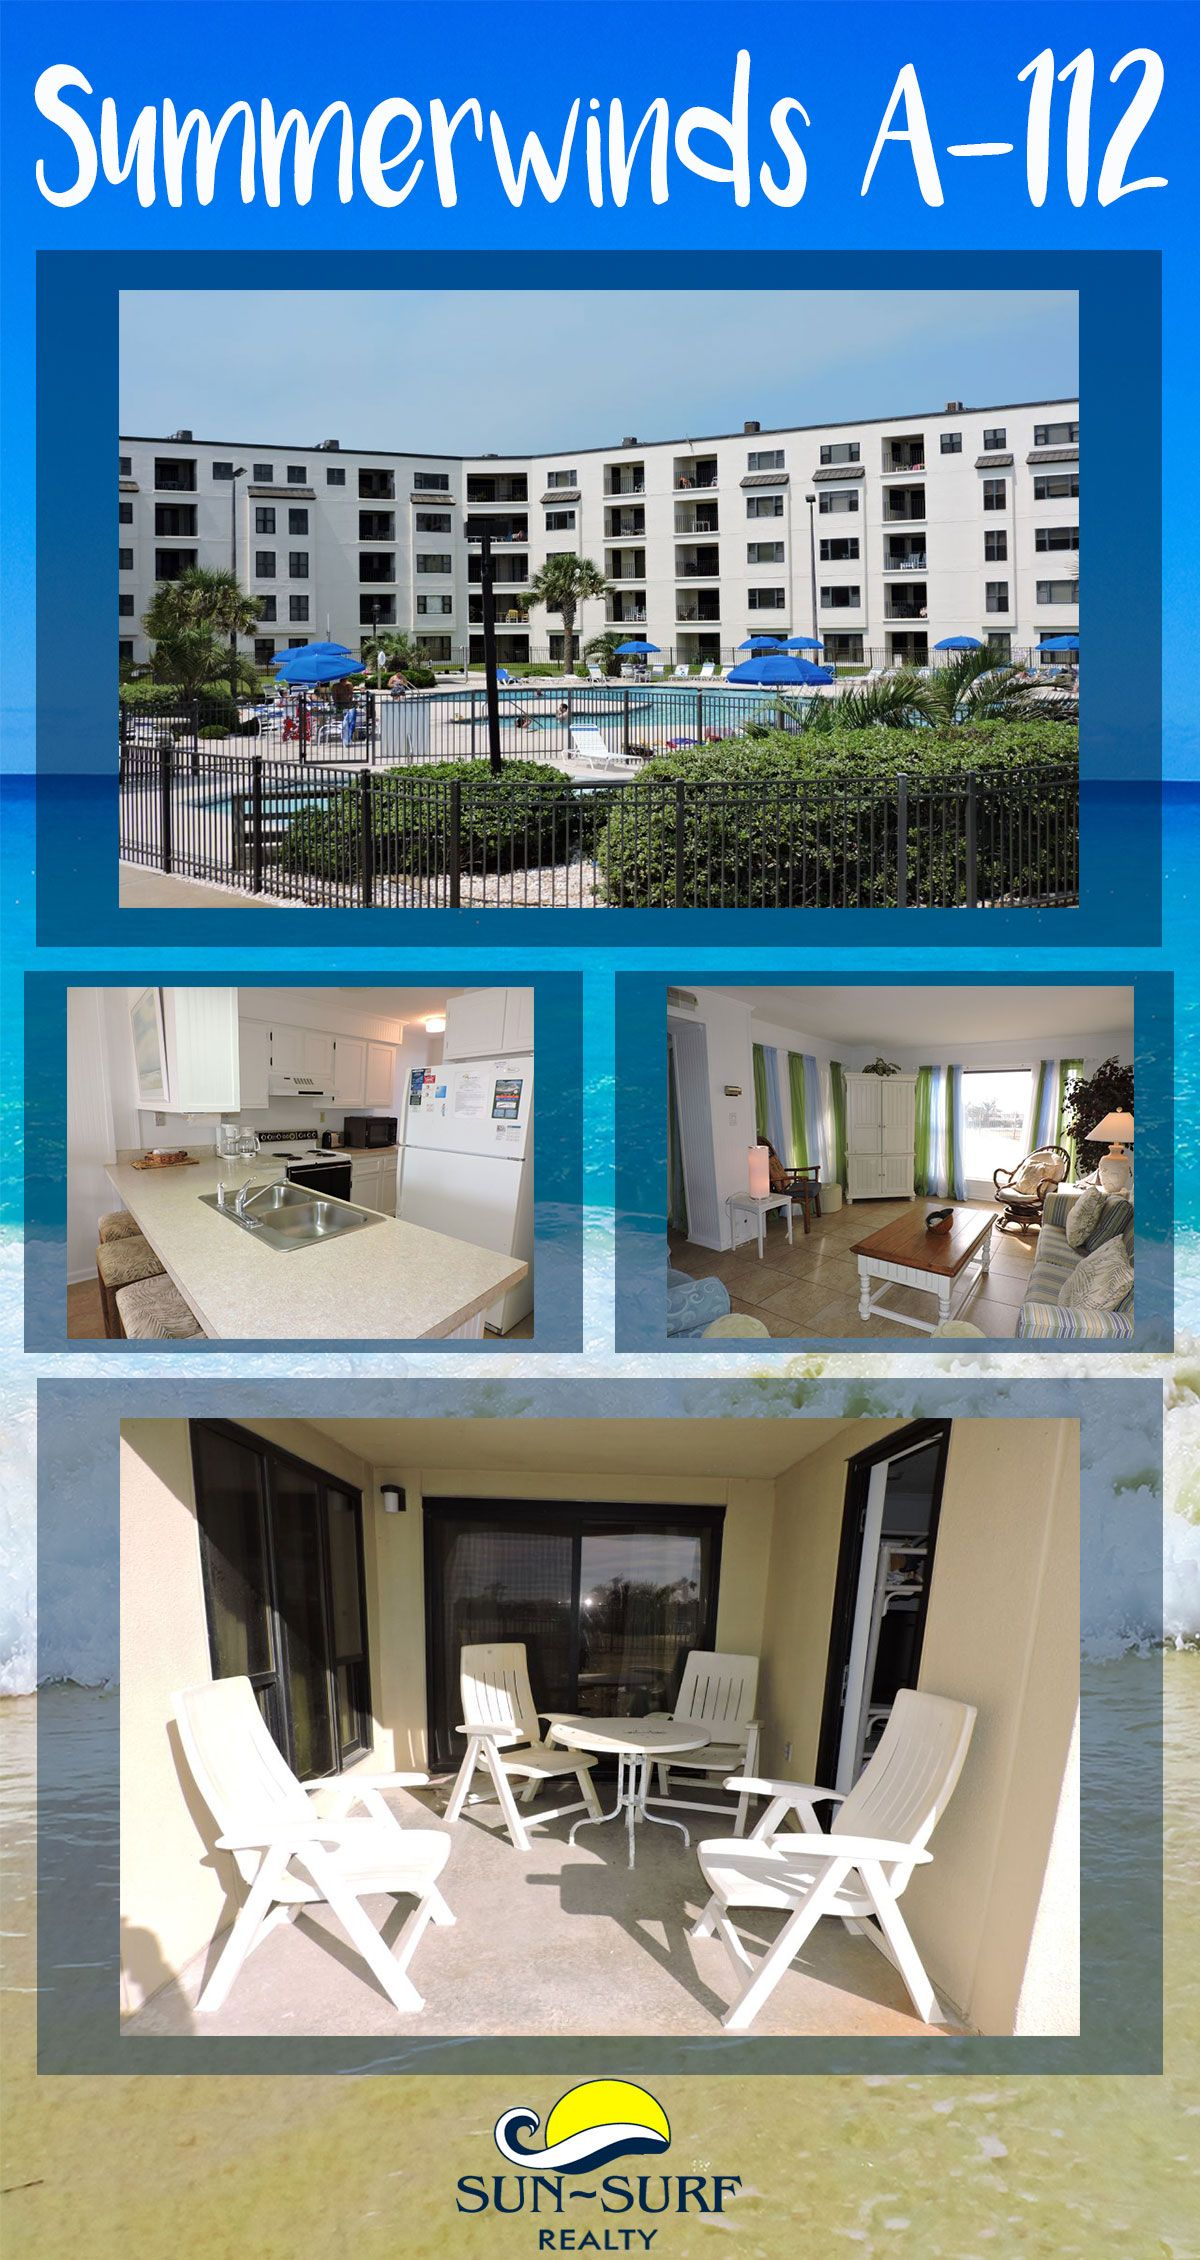 Summerwinds A 112 Is An Amazing Place To Rent For You Emerald Isle Beach Vacation Anytime Of Year Oceanfront Vacation Rentals Oceanfront Condo Places To Rent